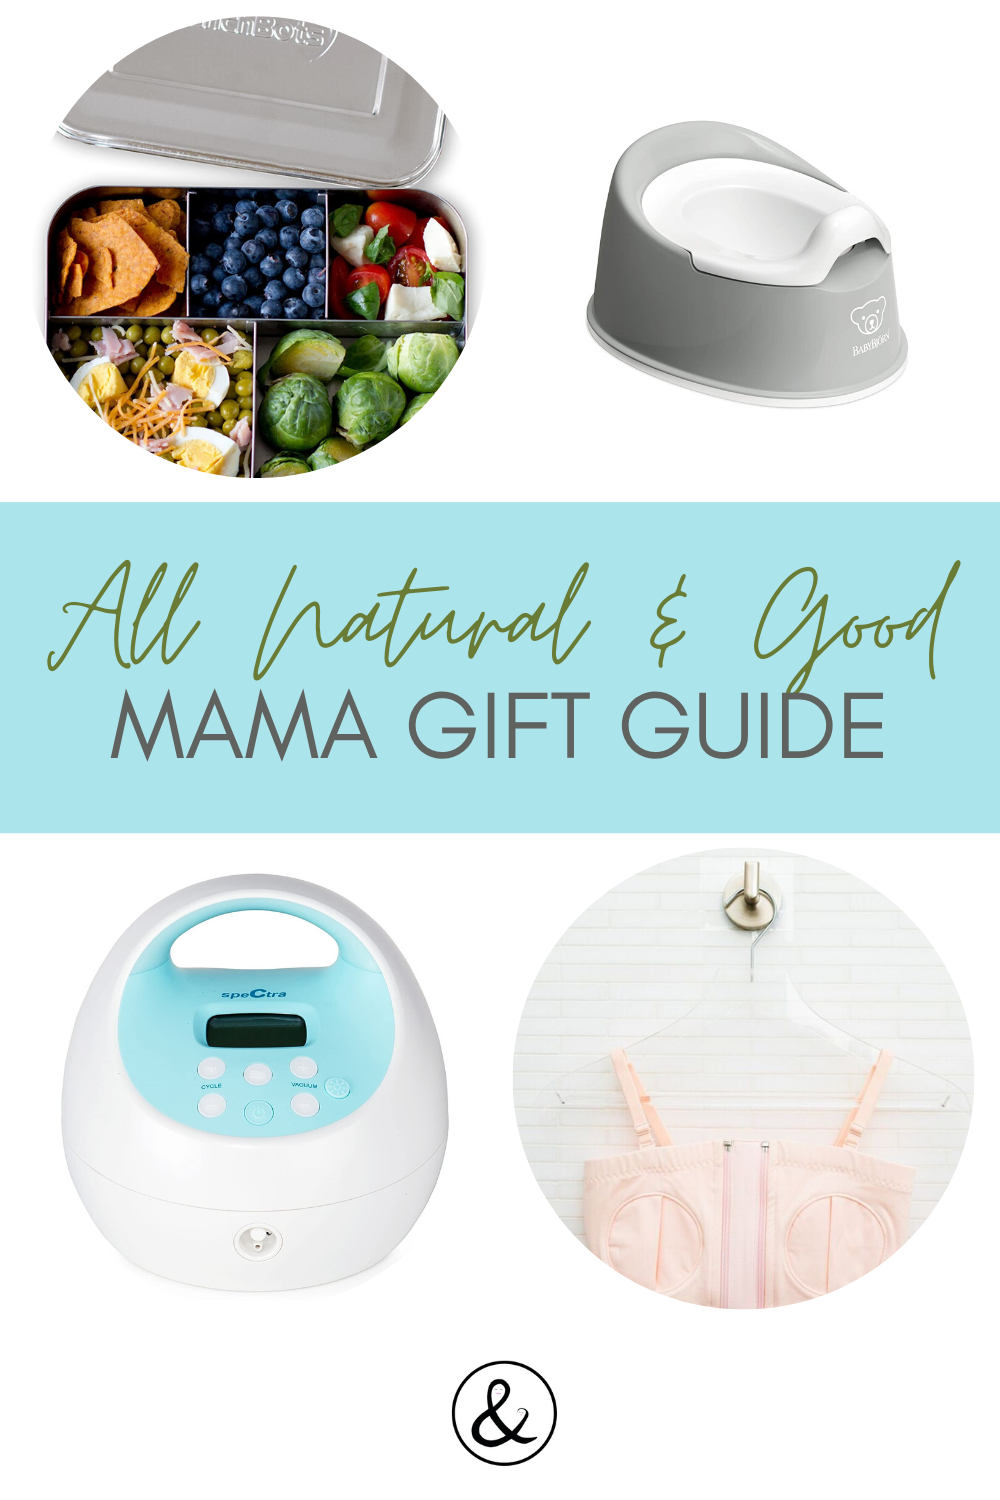 All Natural & Good Mama Gift Guide